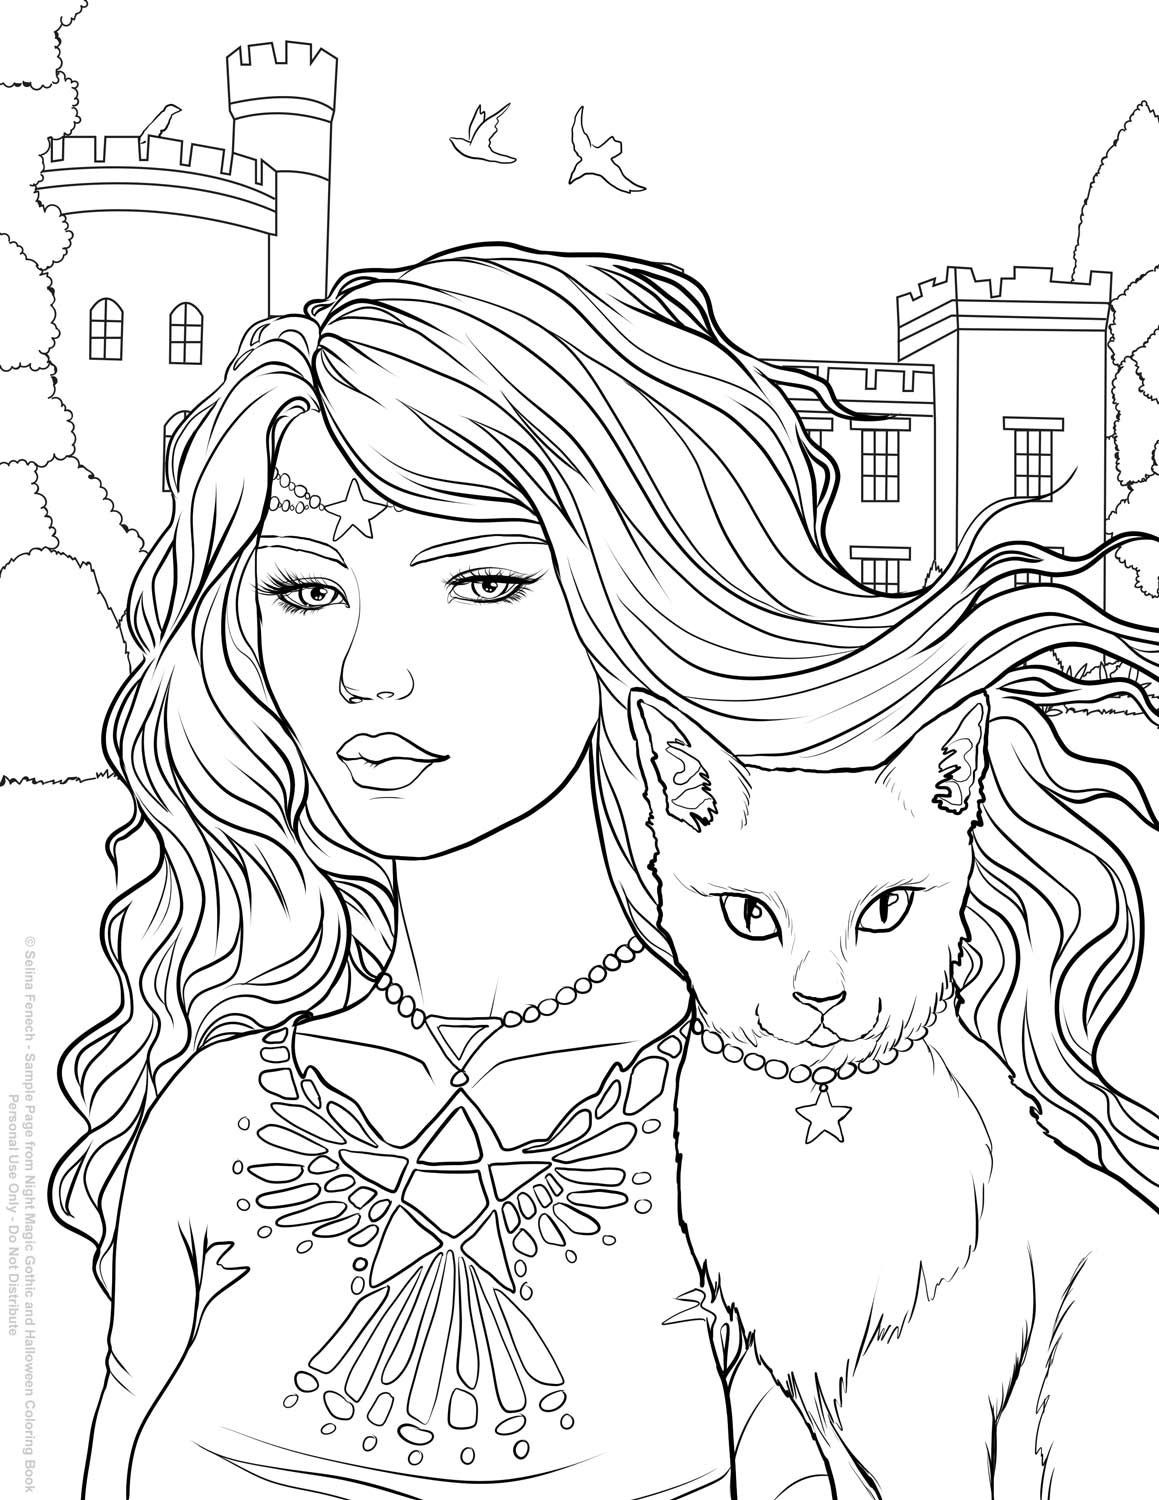 coloring pages women coloring pages for girls best coloring pages for kids women pages coloring